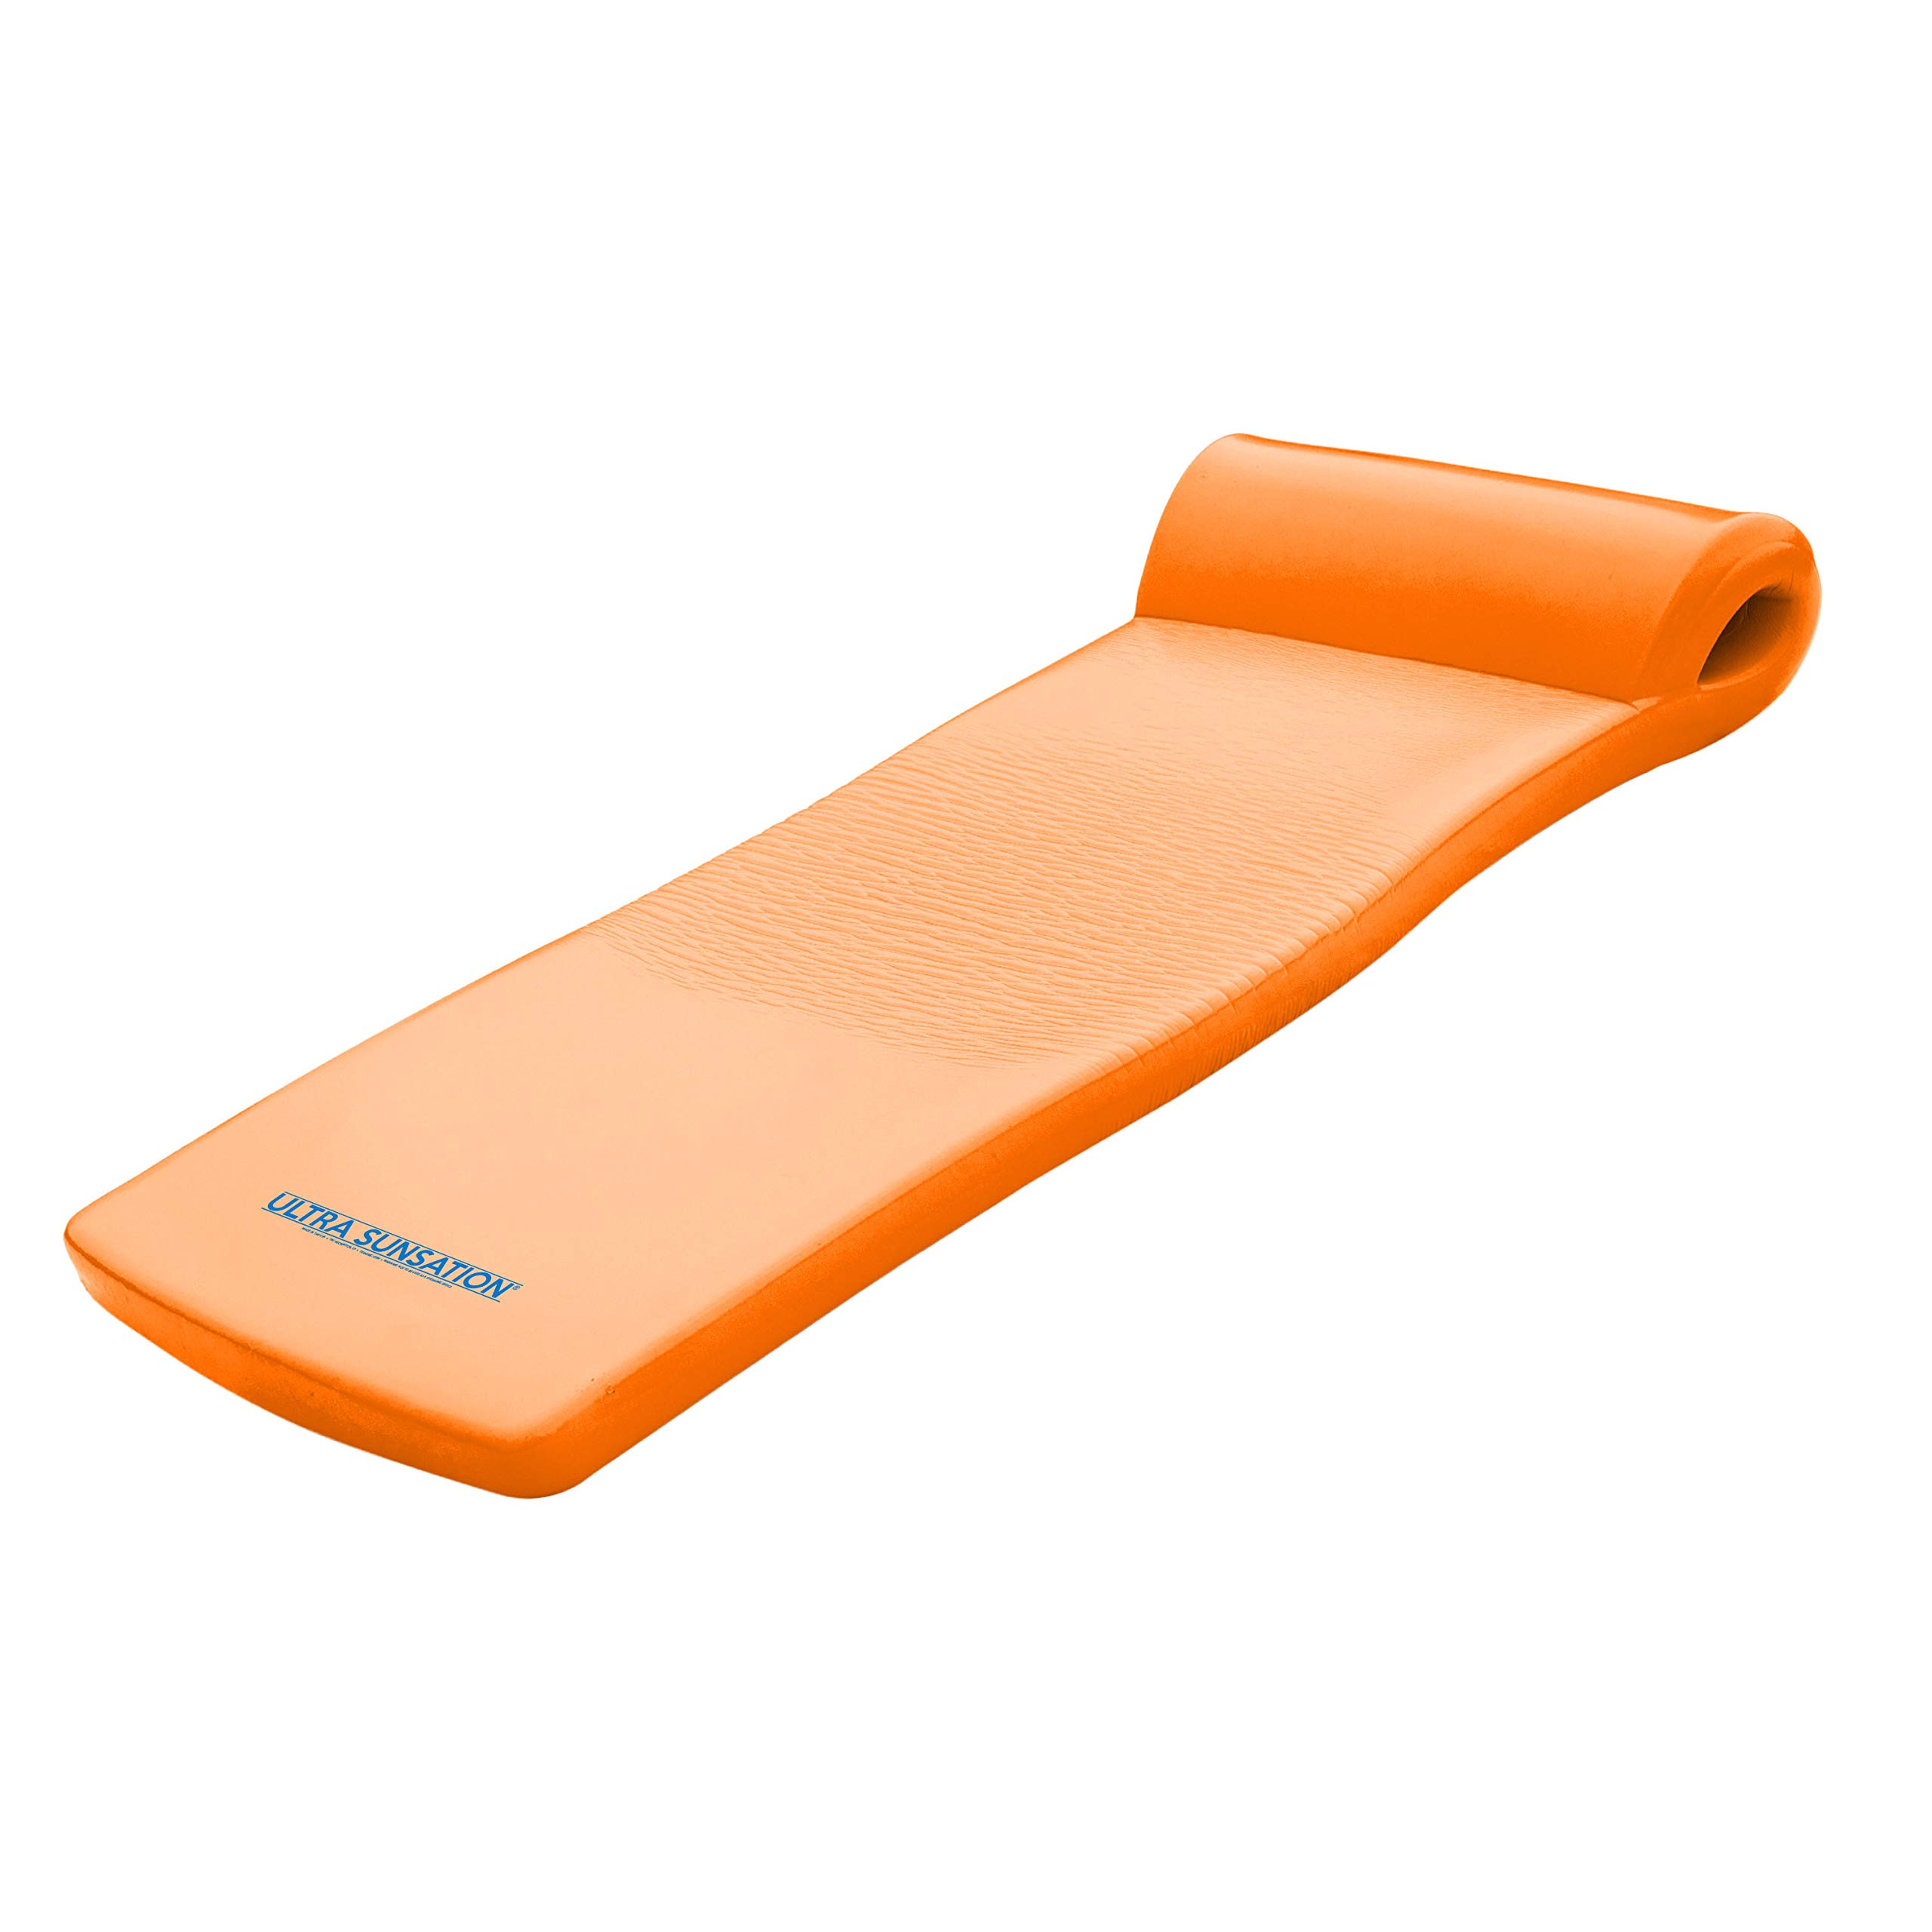 TRC Recreation Ultra Sunsation Float, Orange